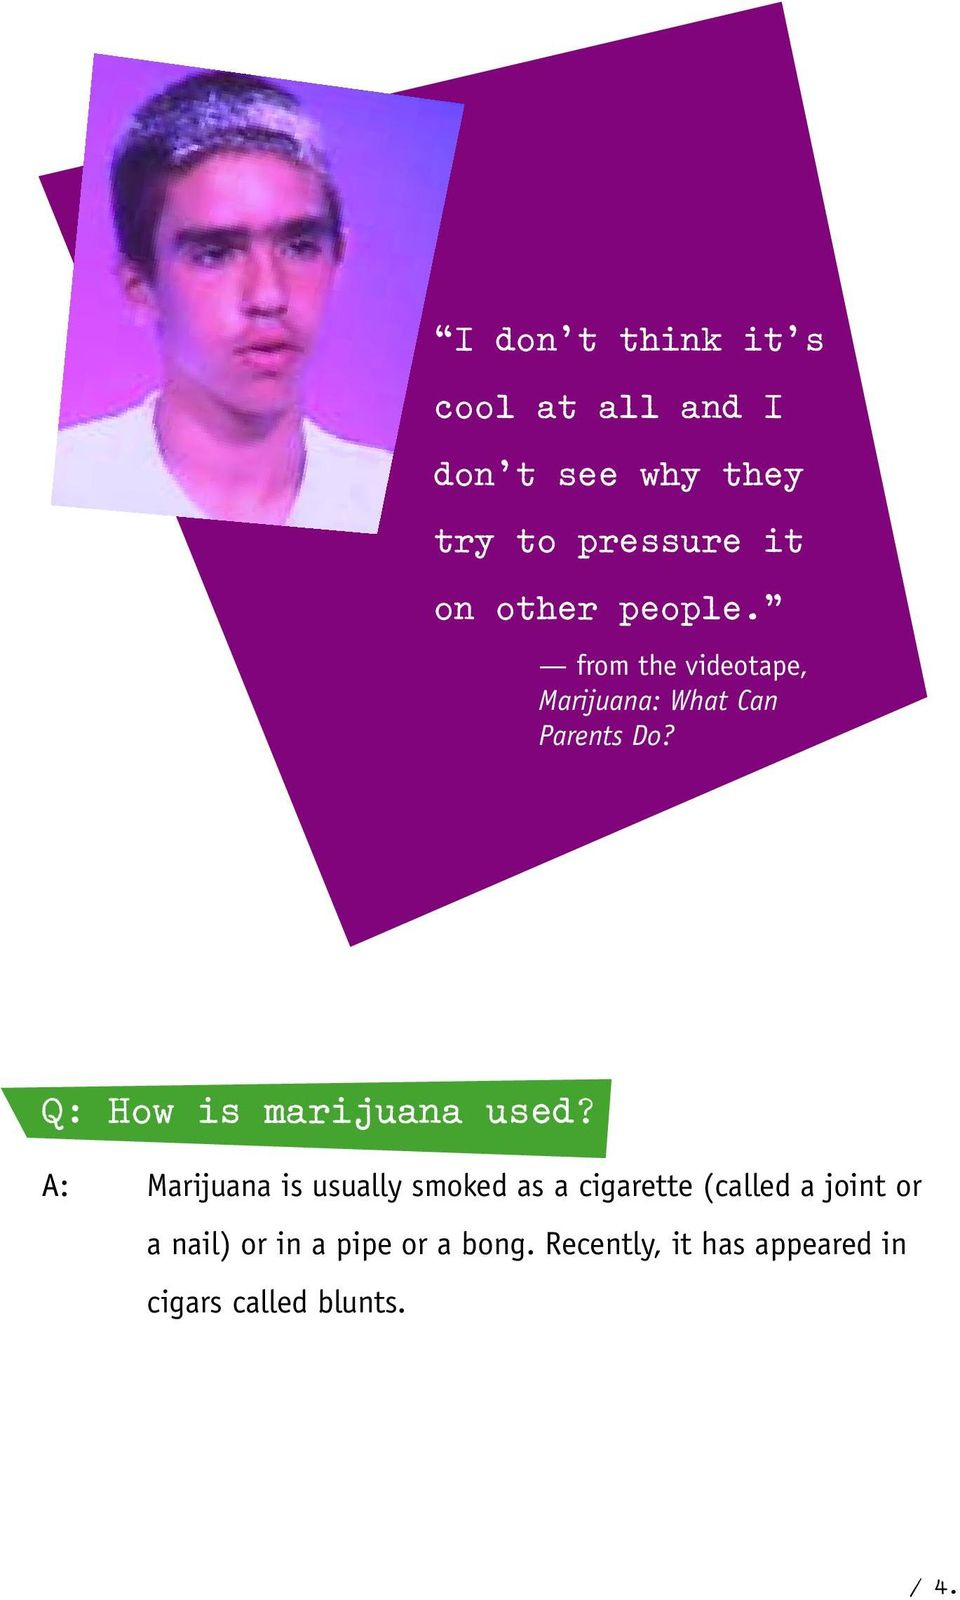 Q: How is marijuana used?